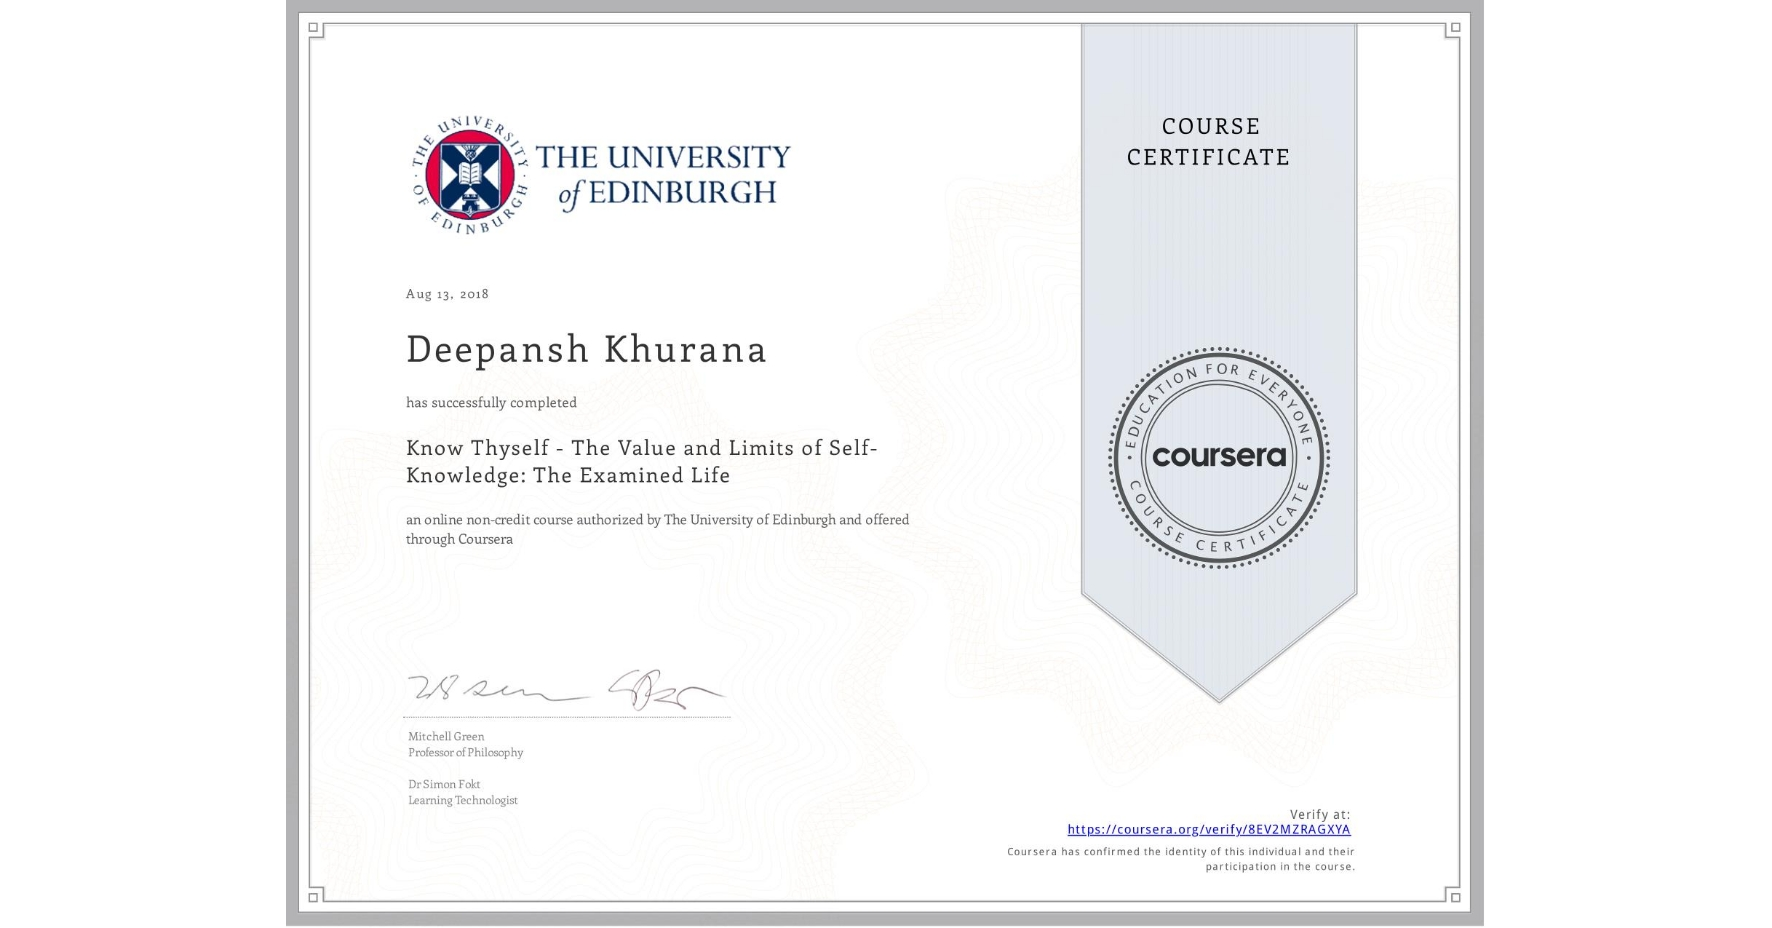 View certificate for Deepansh Khurana,  Know Thyself - The Value and Limits of Self-Knowledge: The Examined Life, an online non-credit course authorized by The University of Edinburgh and offered through Coursera